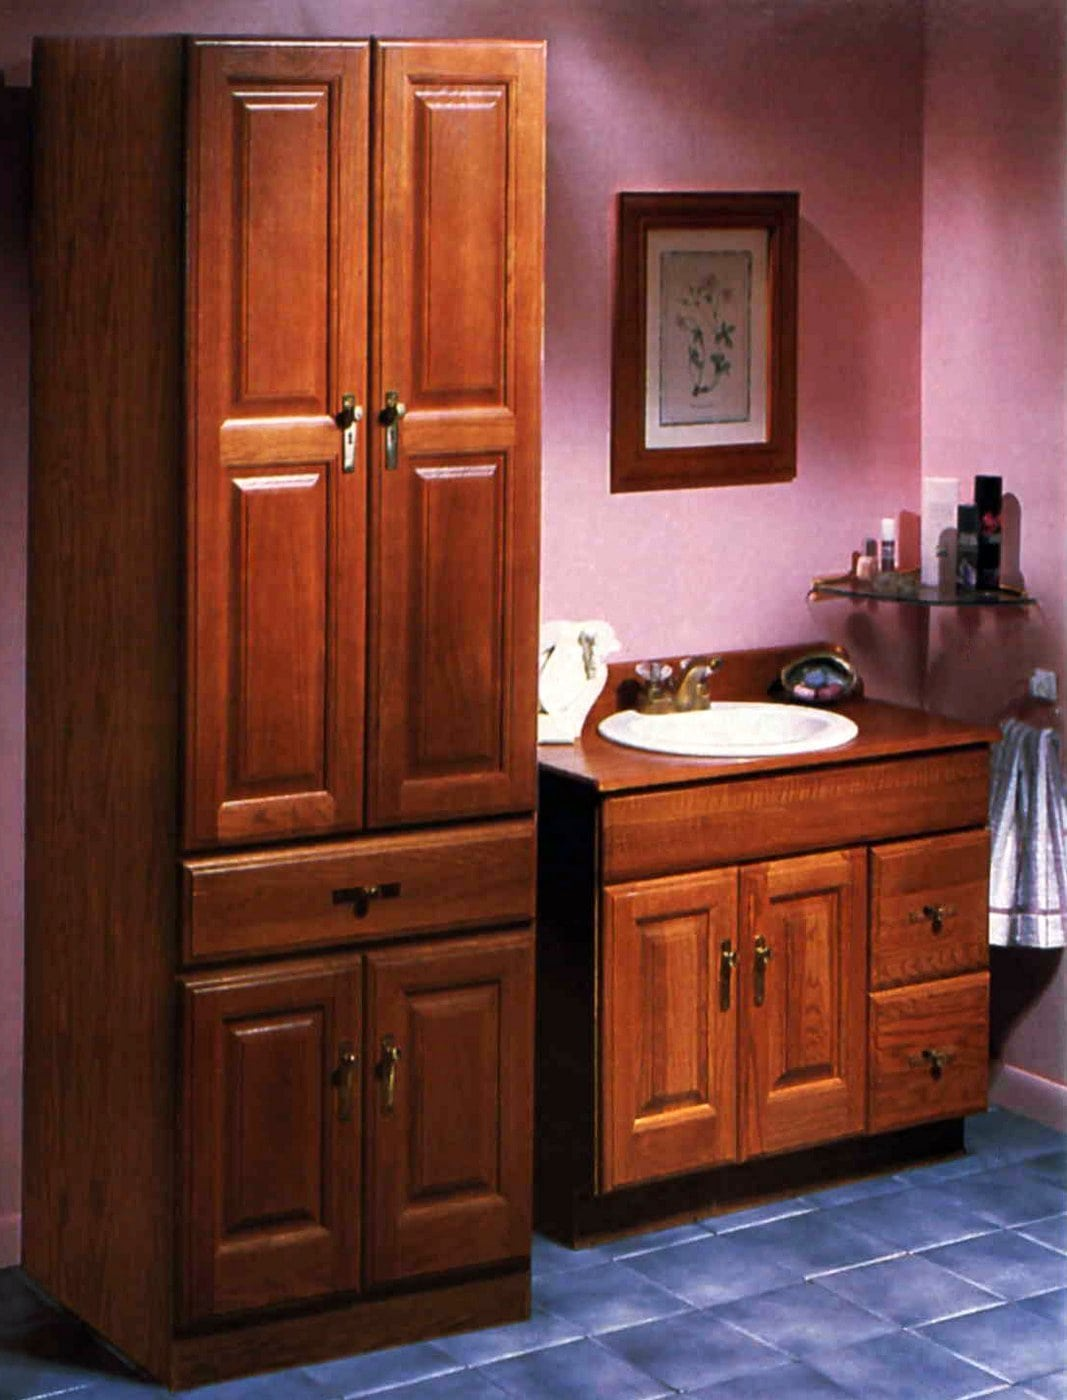 Wooden bathroom cabinets from the 80s